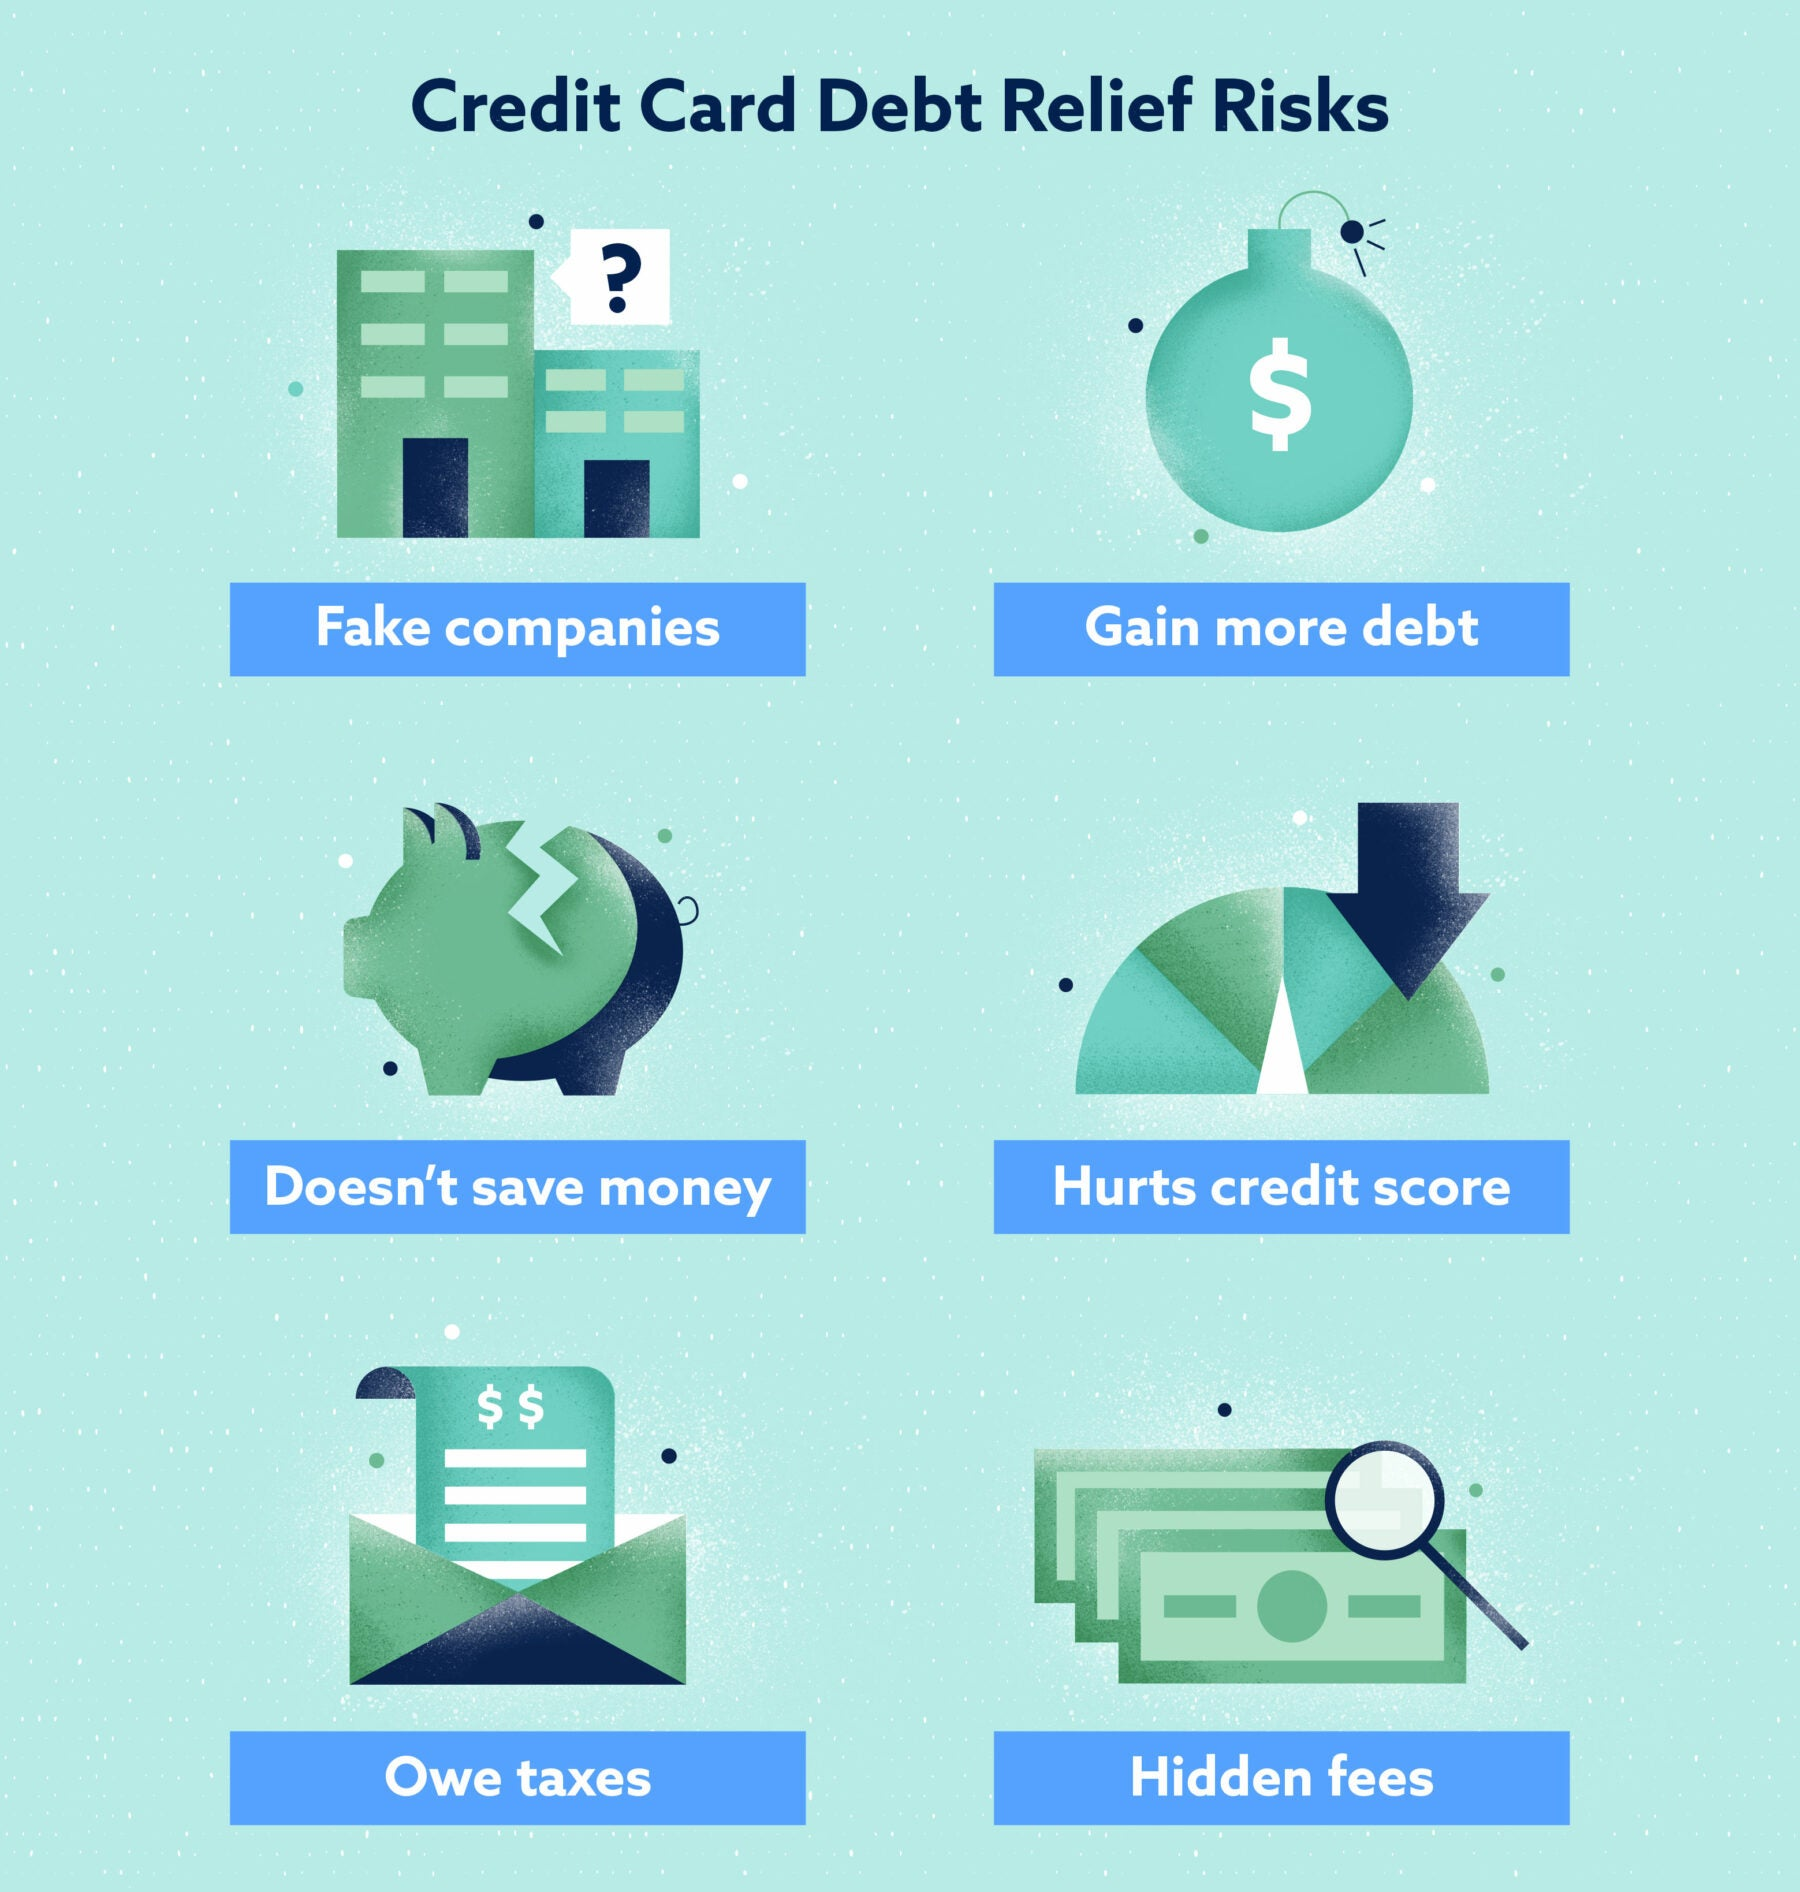 Credit Card Debt Relief Risks Image